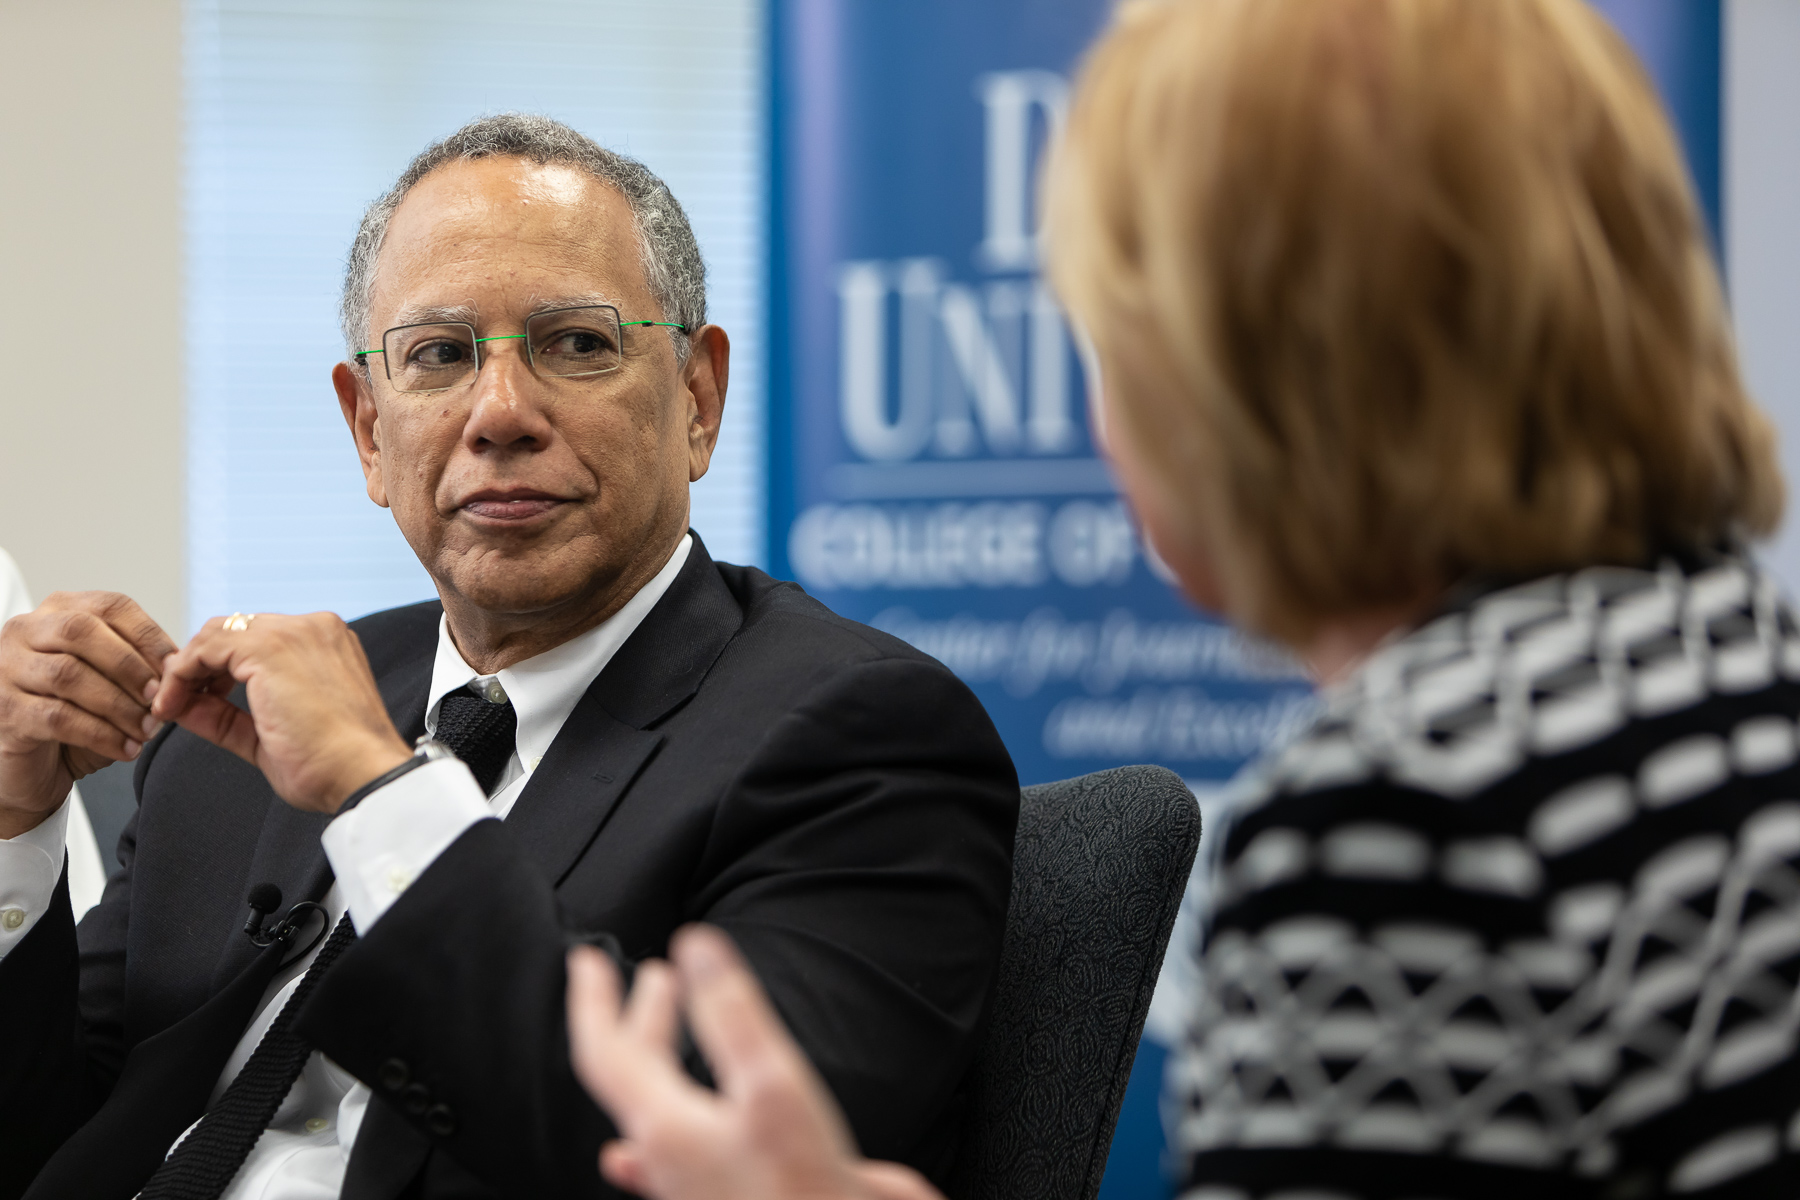 Dean Baquet, executive editor of the The New York Times, talks with Carol Marin, co-director of the Center for Journalism Integrity and Excellence, and College of Communication journalism students on Thursday, April 25. (DePaul University/Jeff Carrion)